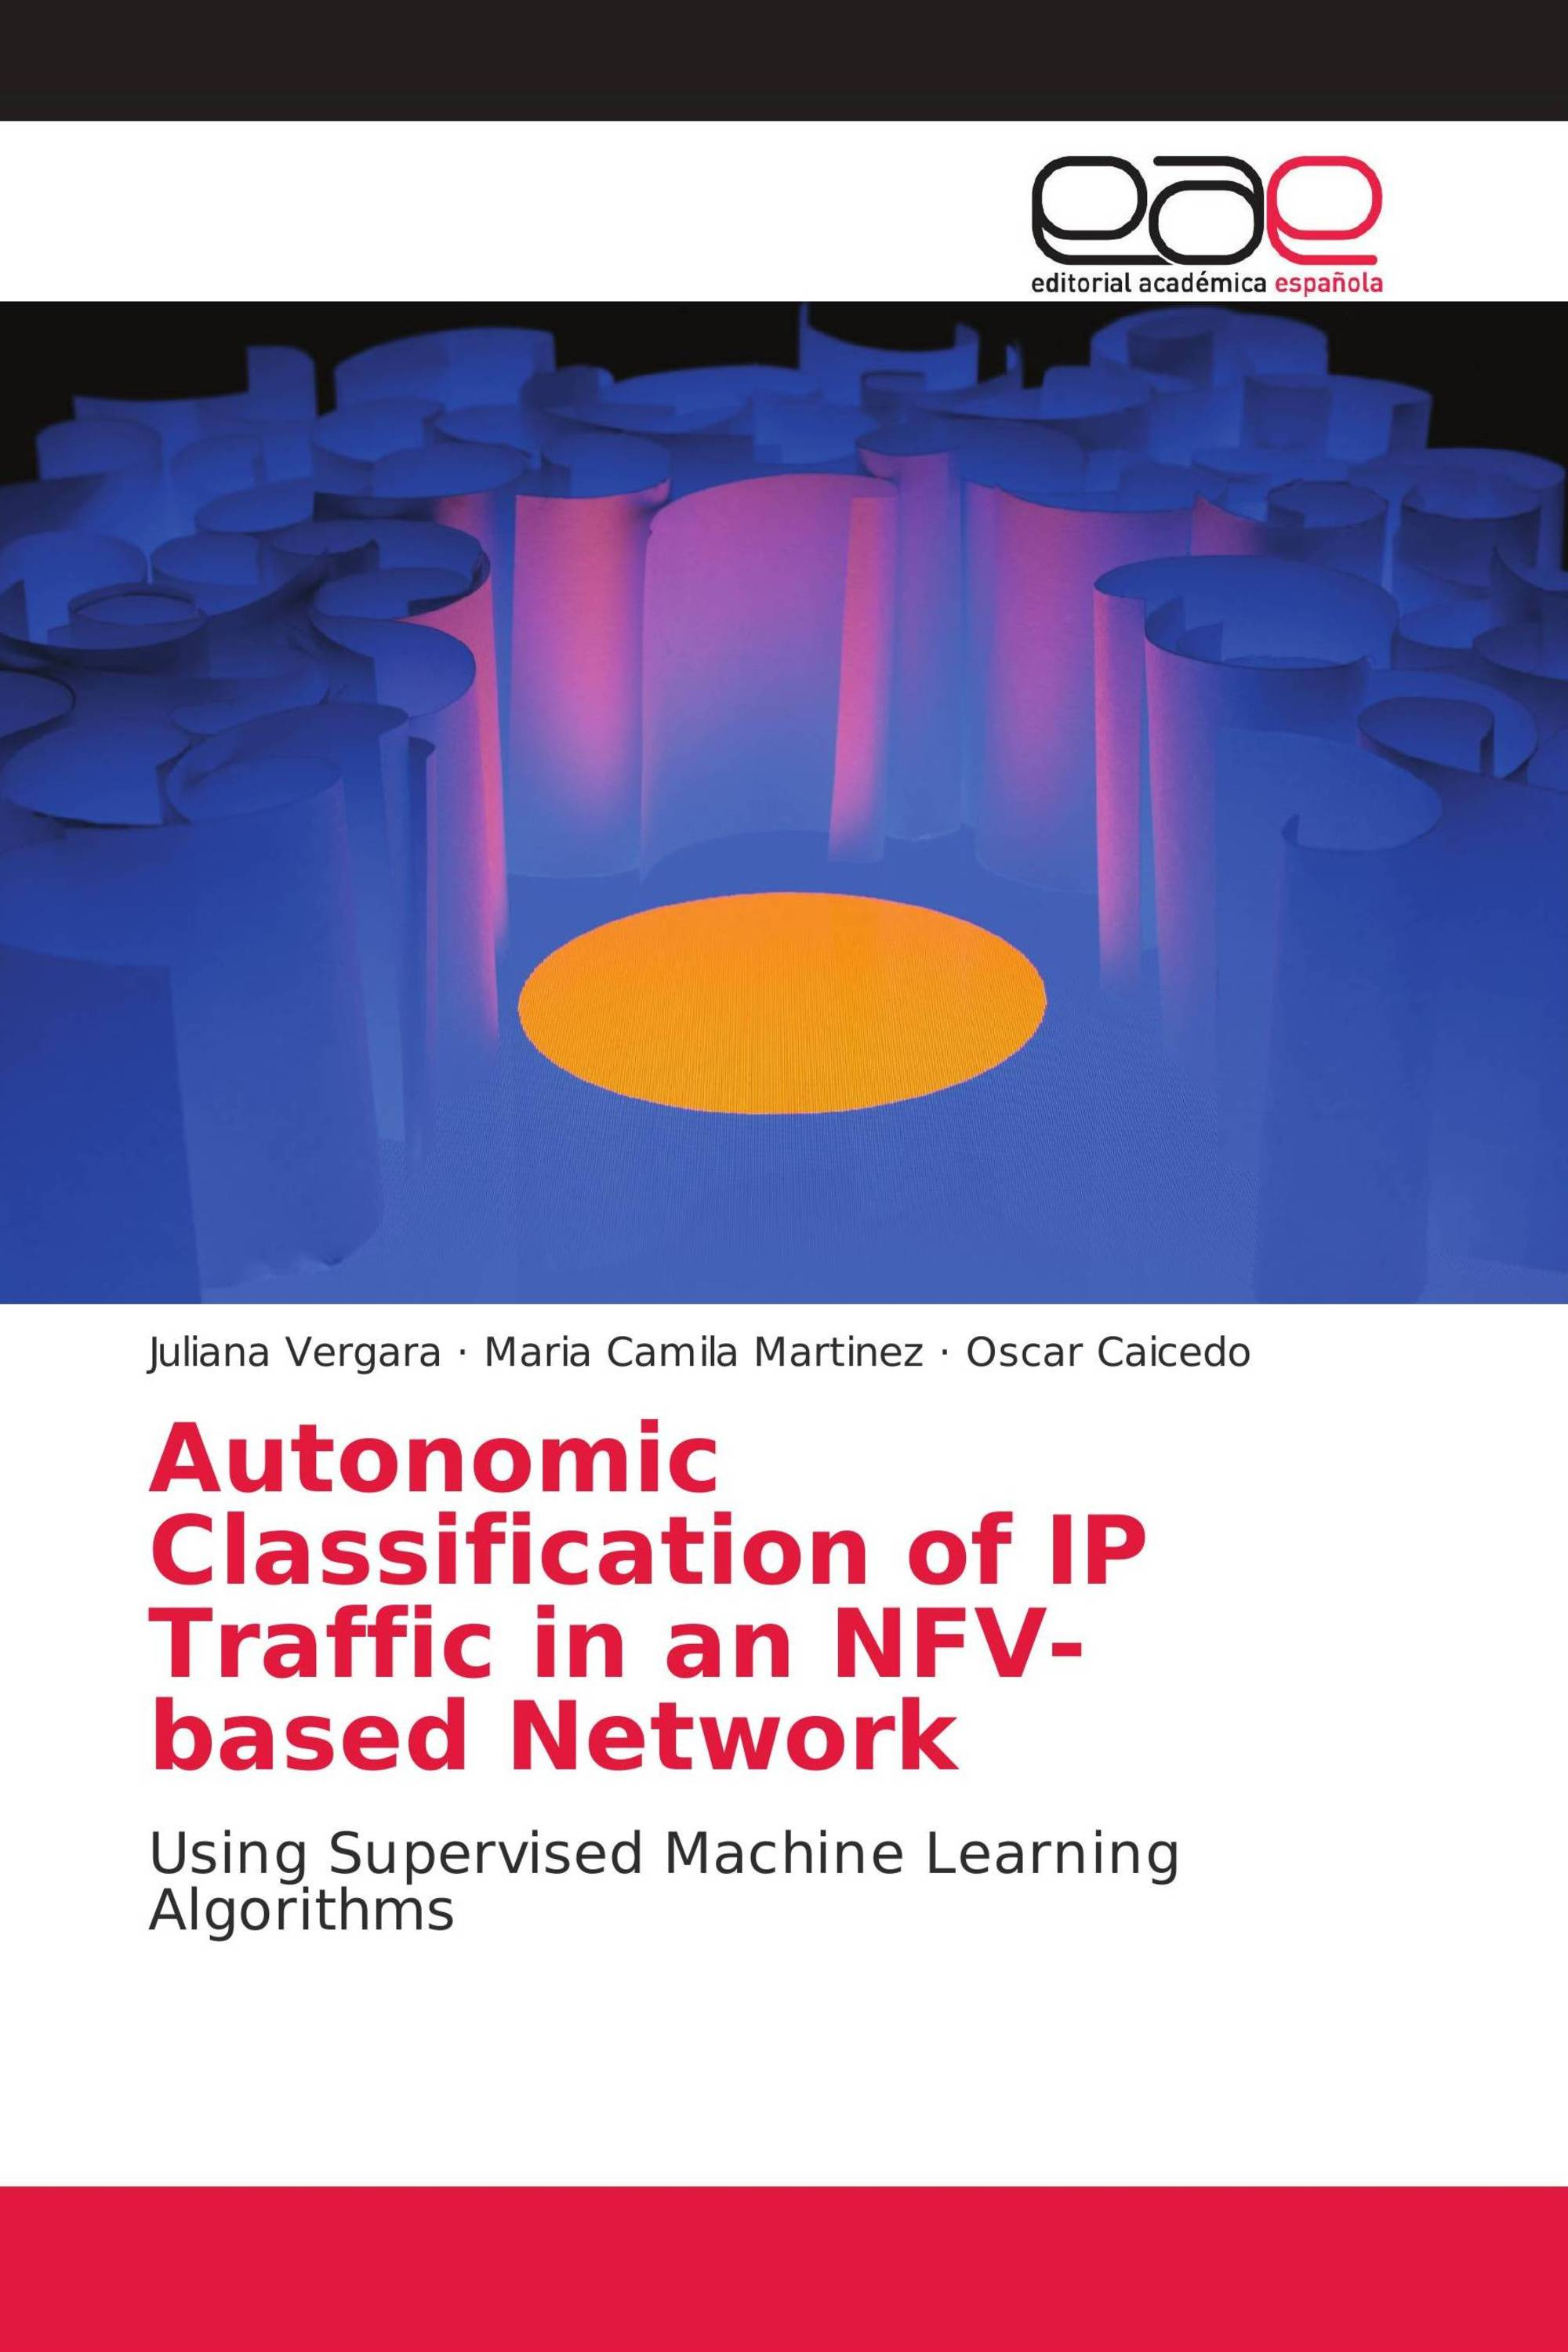 Autonomic Classification of IP Traffic in an NFV-based Network